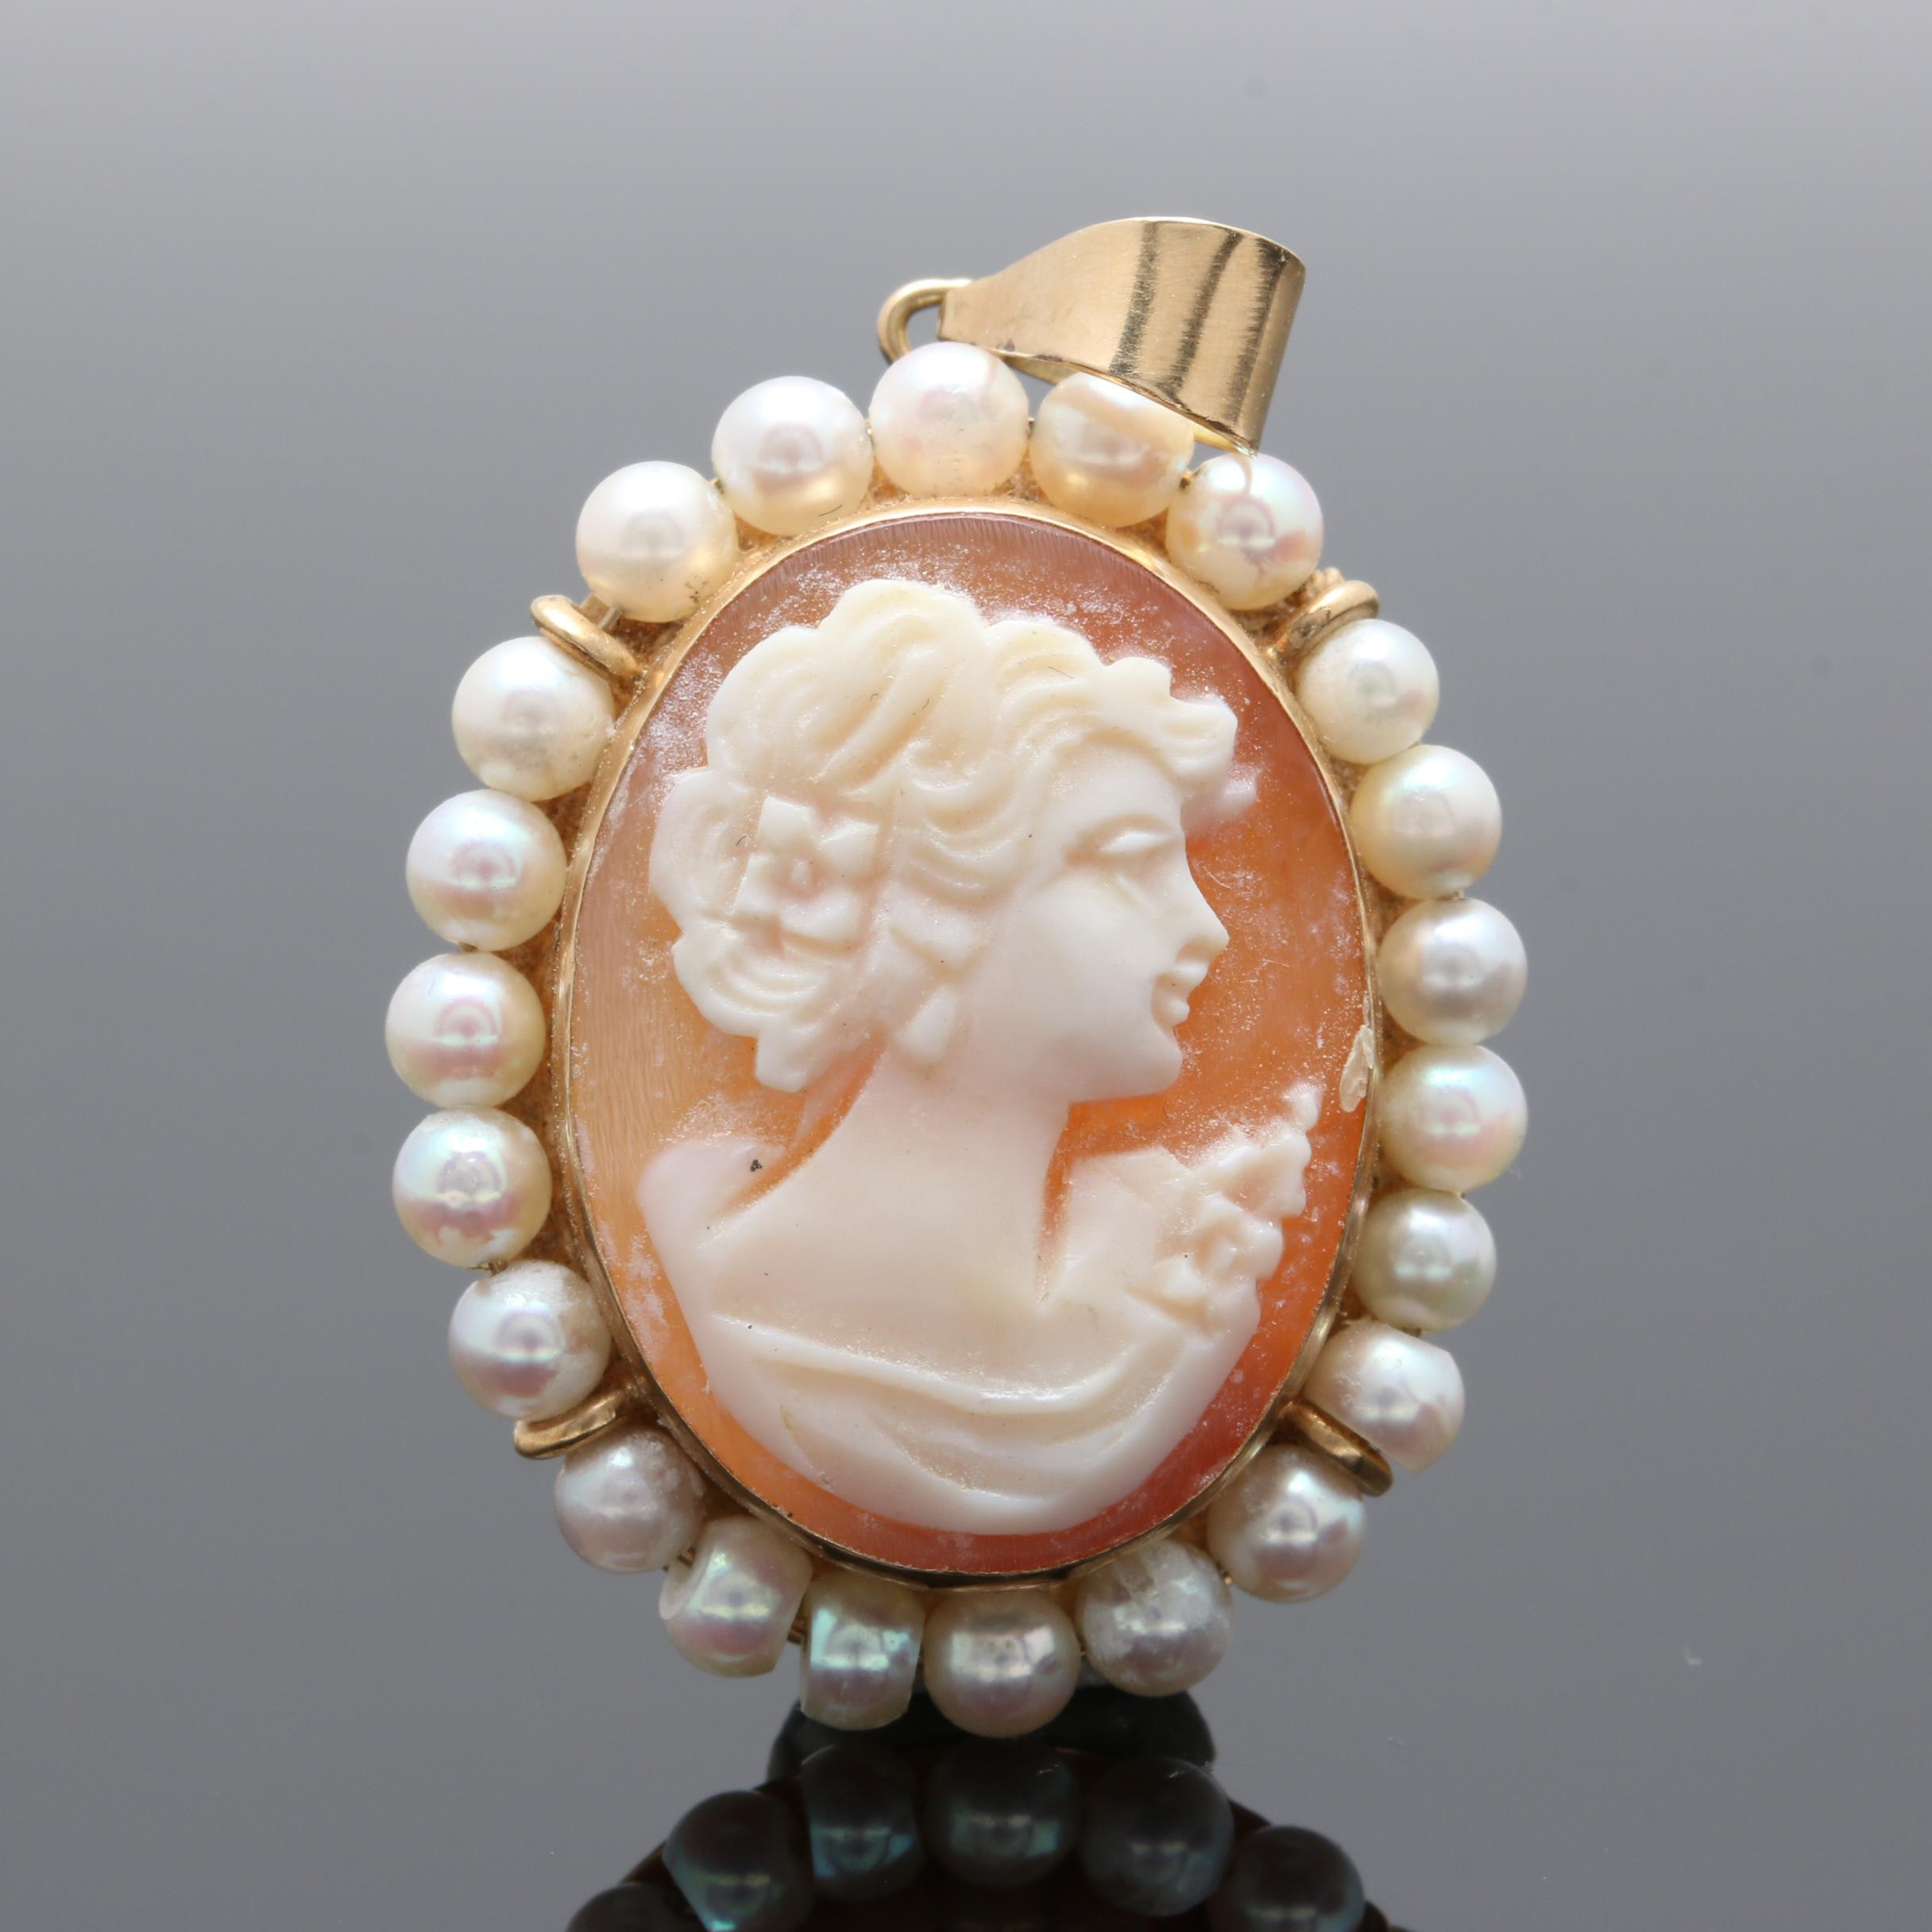 14K Yellow Gold Shell and Cultured Pearl Cameo Pendant